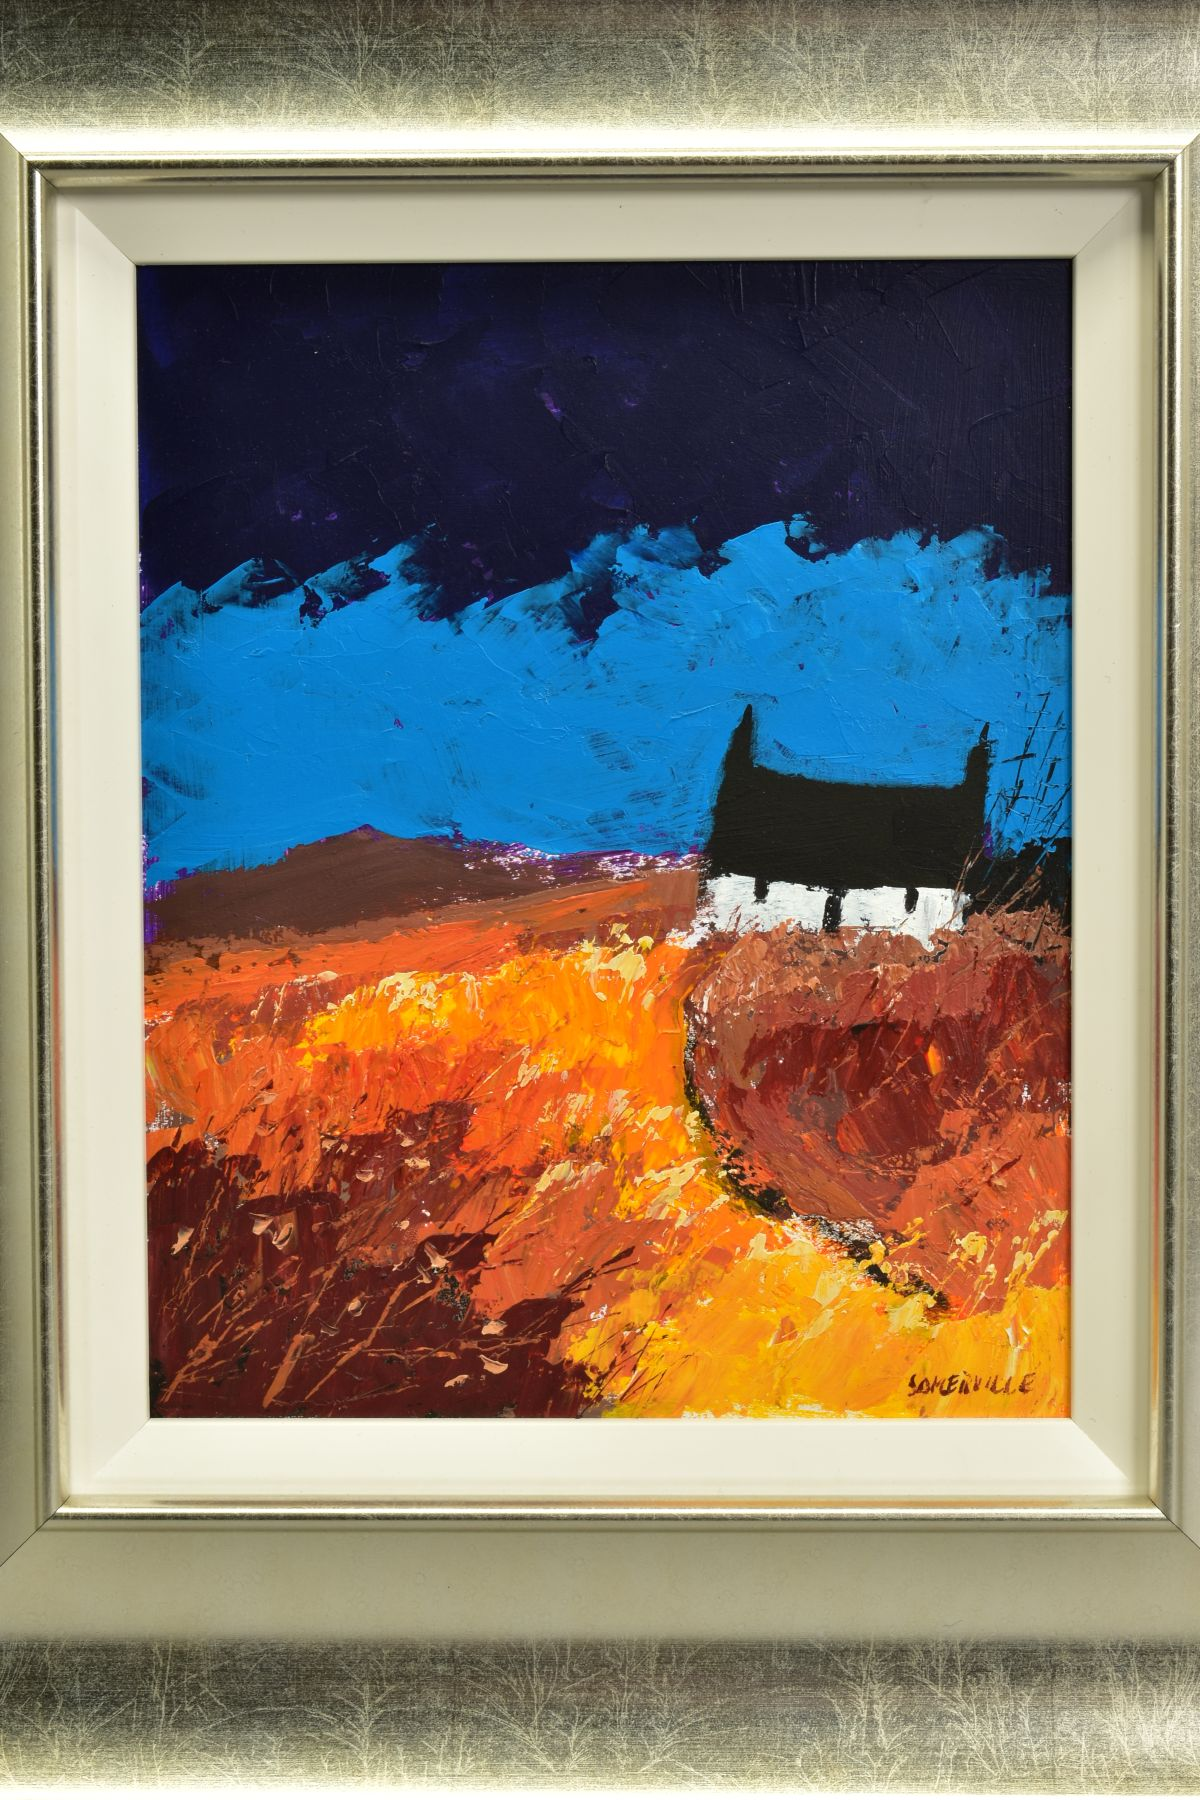 GEORGE SOMERVILLE (BRITISH 1947), 'Fading Daylight', a white cottage under a blue sky, signed bottom - Image 2 of 5